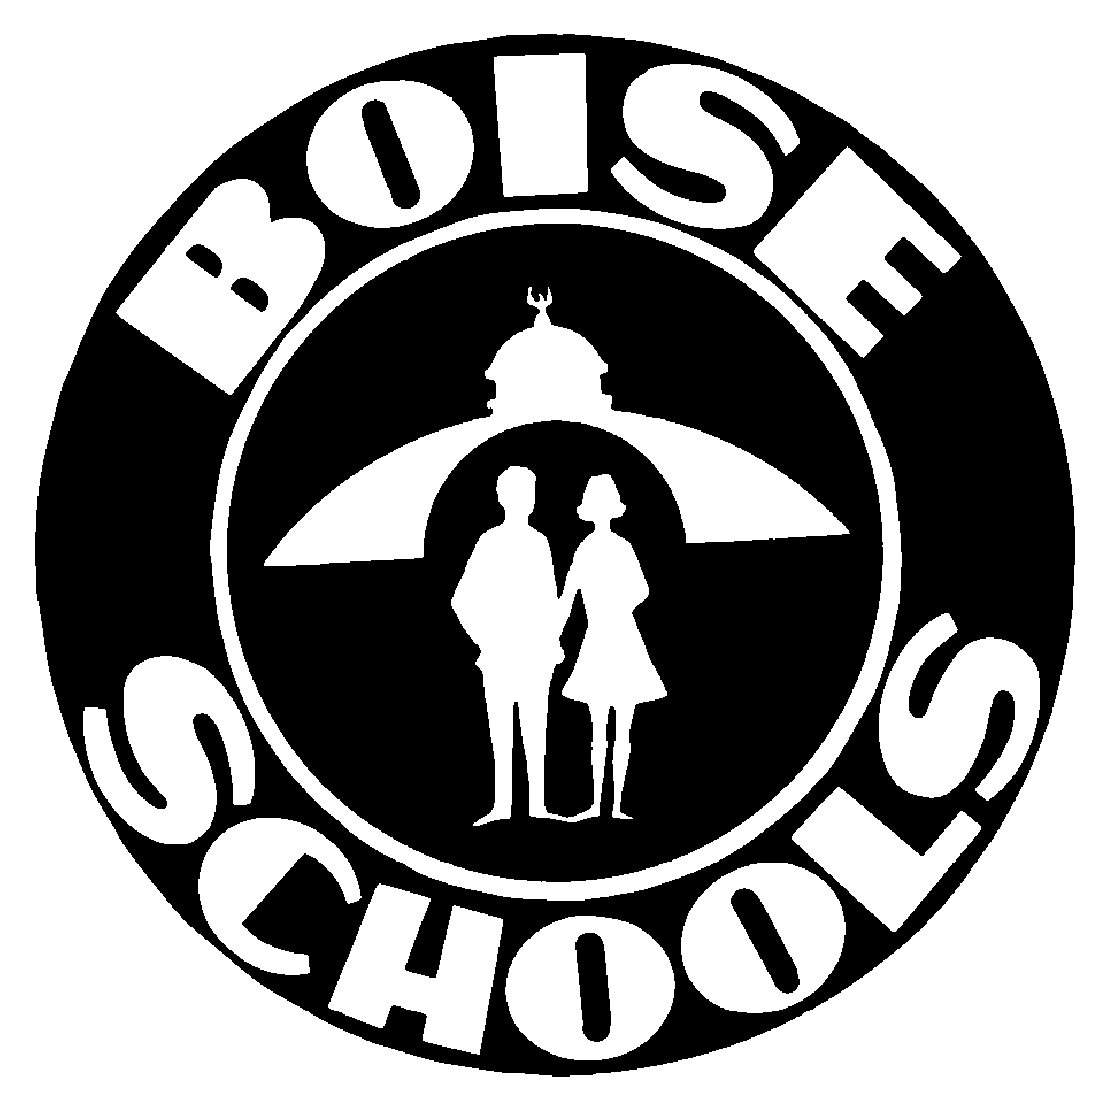 Boise Independent School District